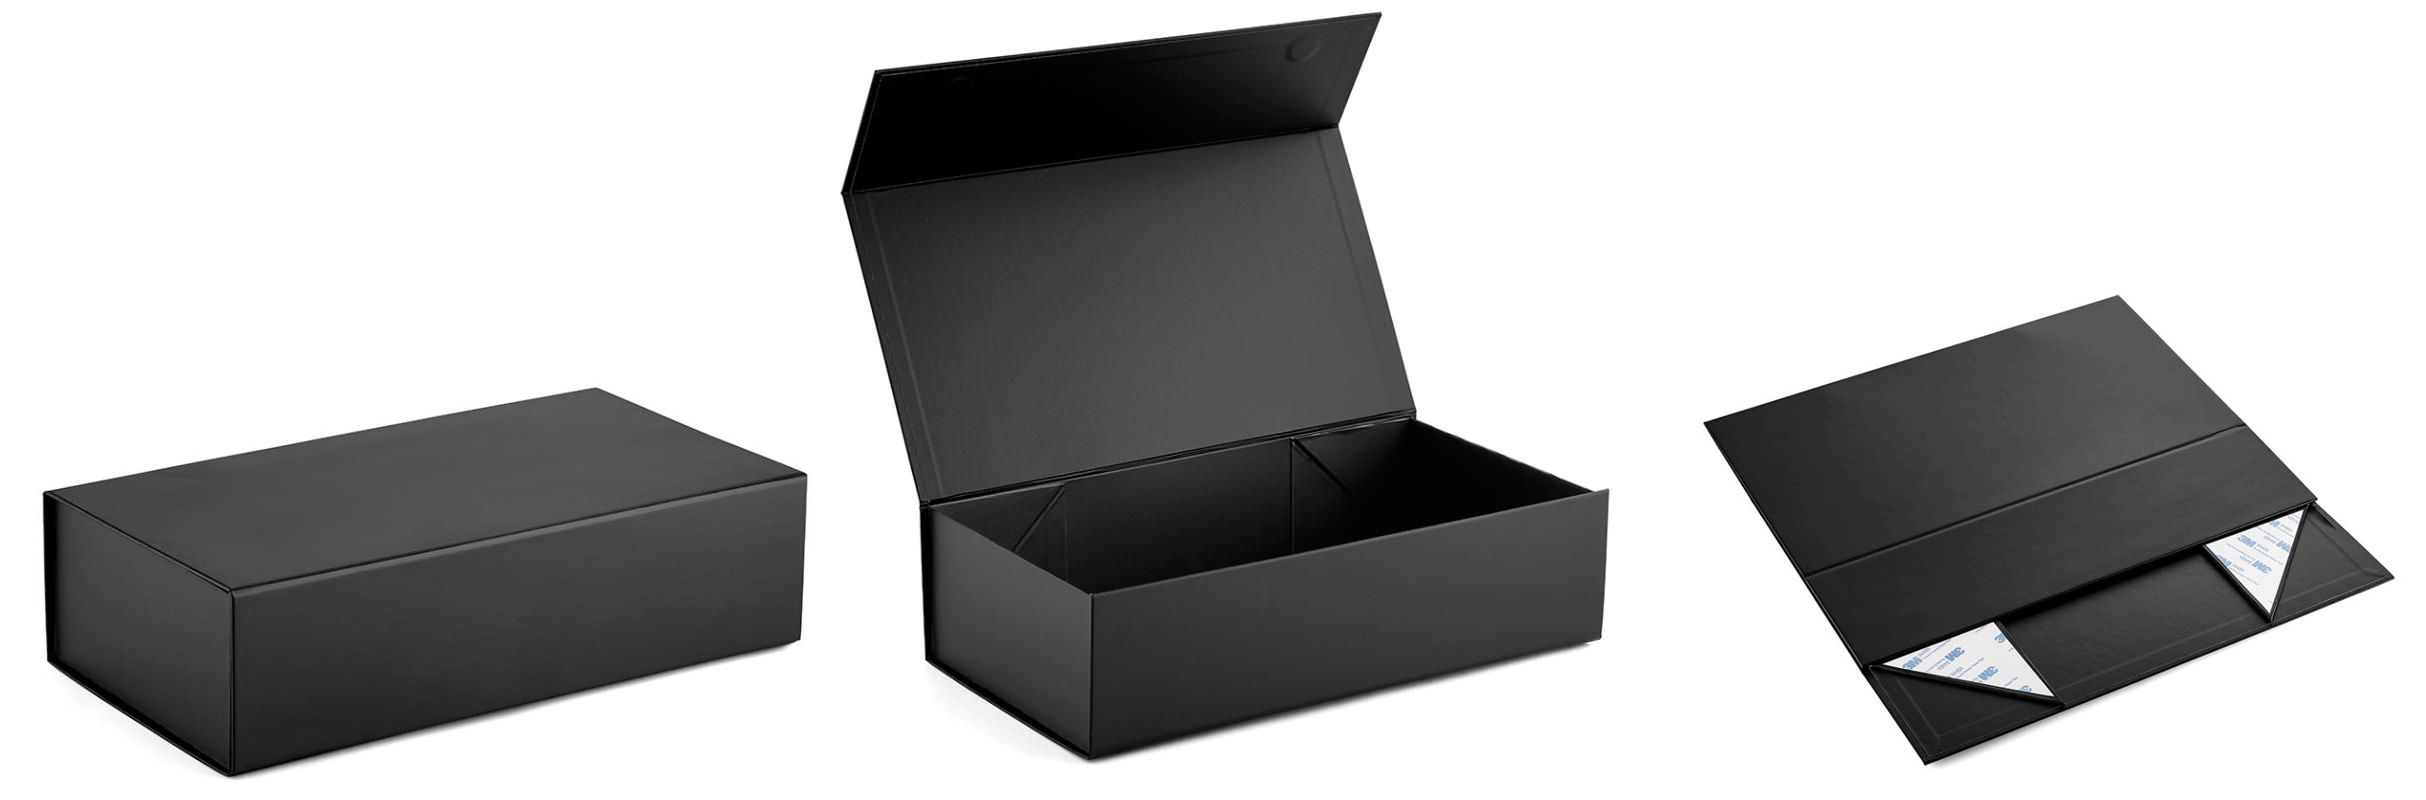 foldable gift boxes with magnetic closure from BoxBagPack | Foldables, Gift  boxes wholesale, Gift box